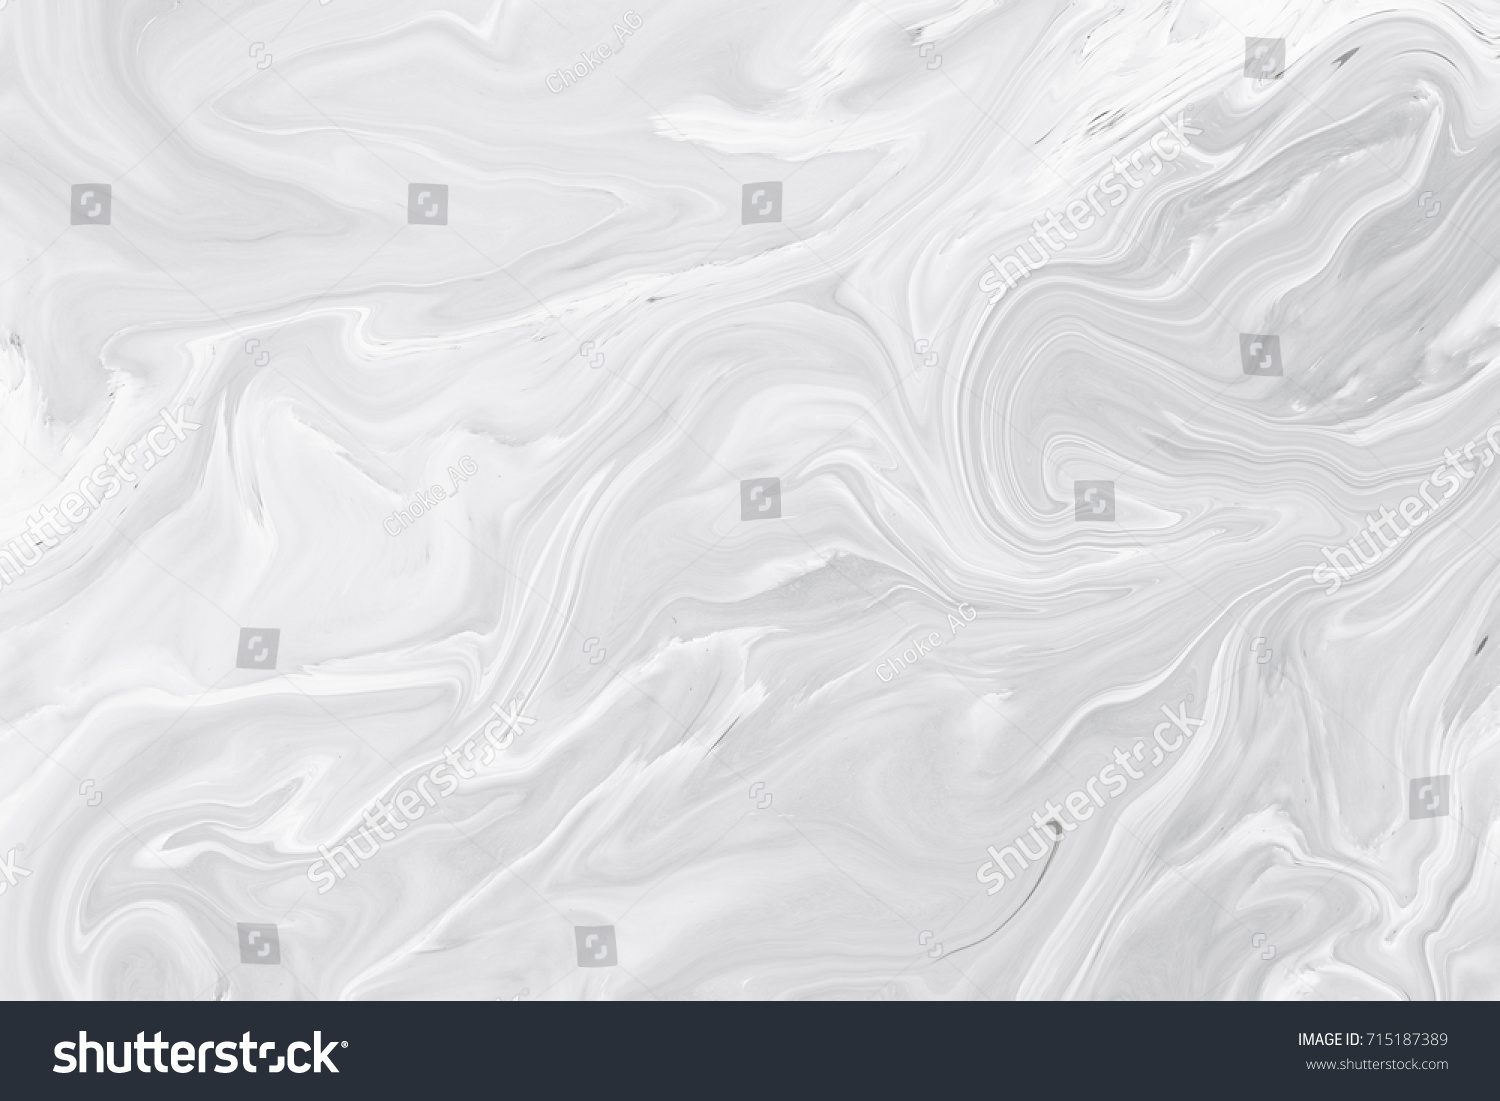 Top Wallpaper Marble Case - stock-photo-marble-ink-painted-waves-texture-background-pattern-can-used-for-wallpaper-cover-case-mobile-phone-715187389  HD_1739100.jpg